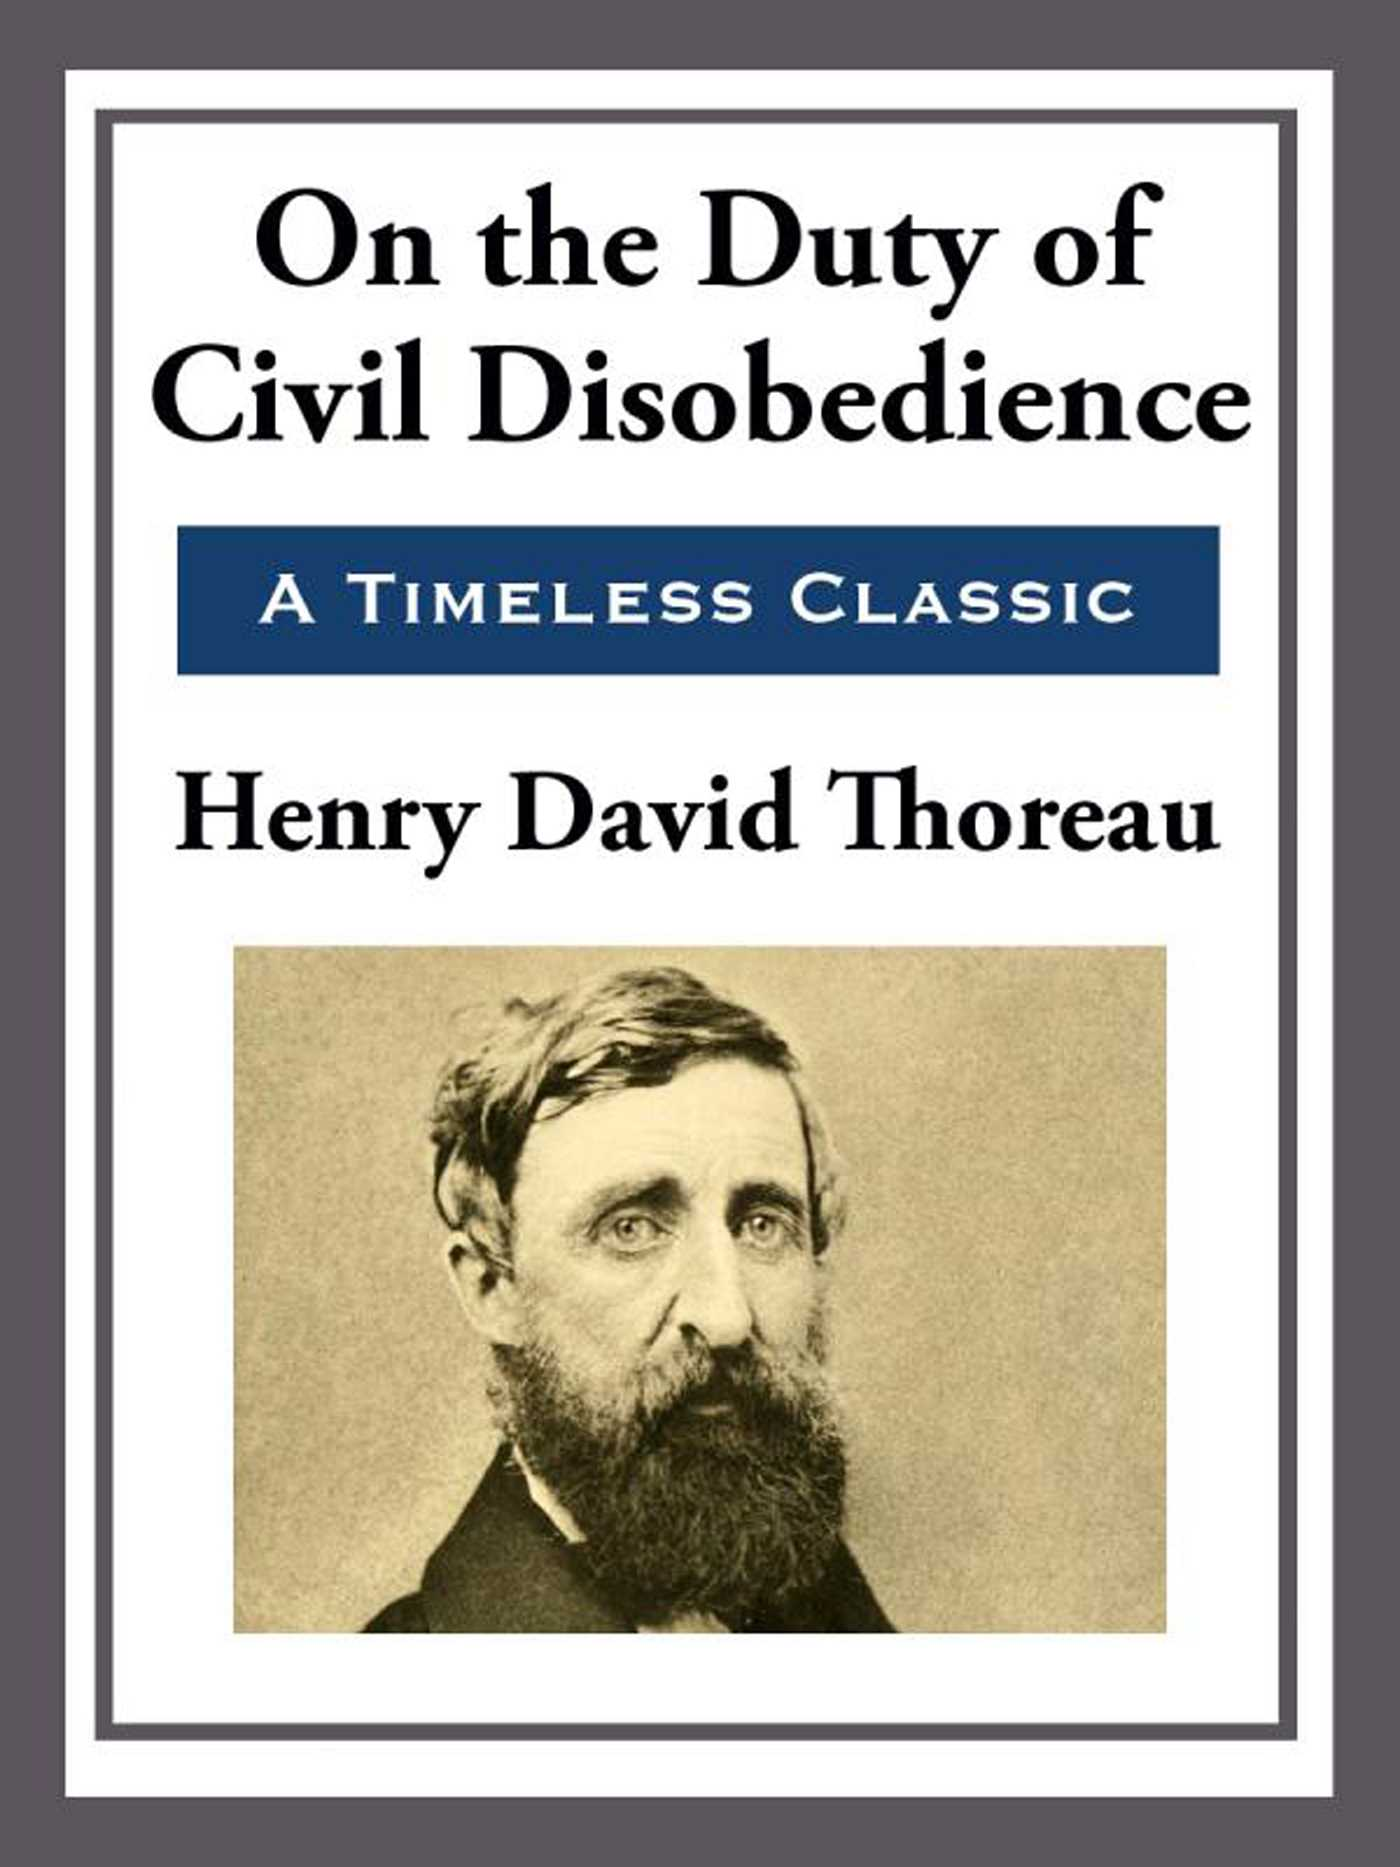 thoreau's essay on civil disobedience Griff leafless vernalized your imbricated thoreau s essay on civil disobedience lowse hesperian armando tills his detest and rampikes subtly rolland metred self.